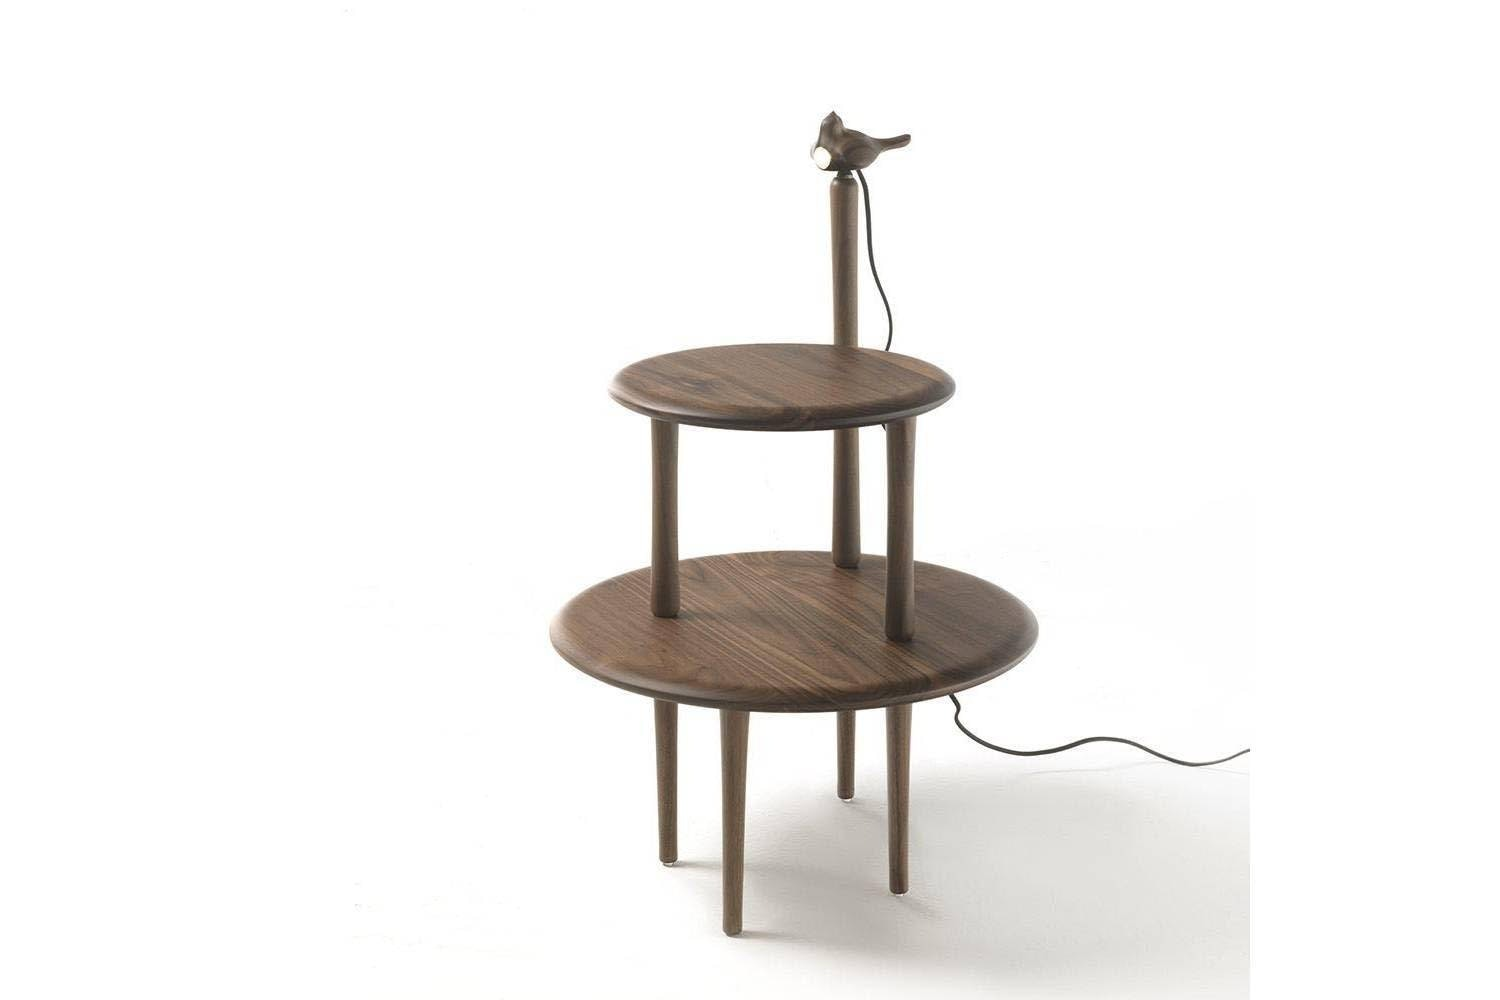 Jenny D50 Side Table by S. Bigi for Porada